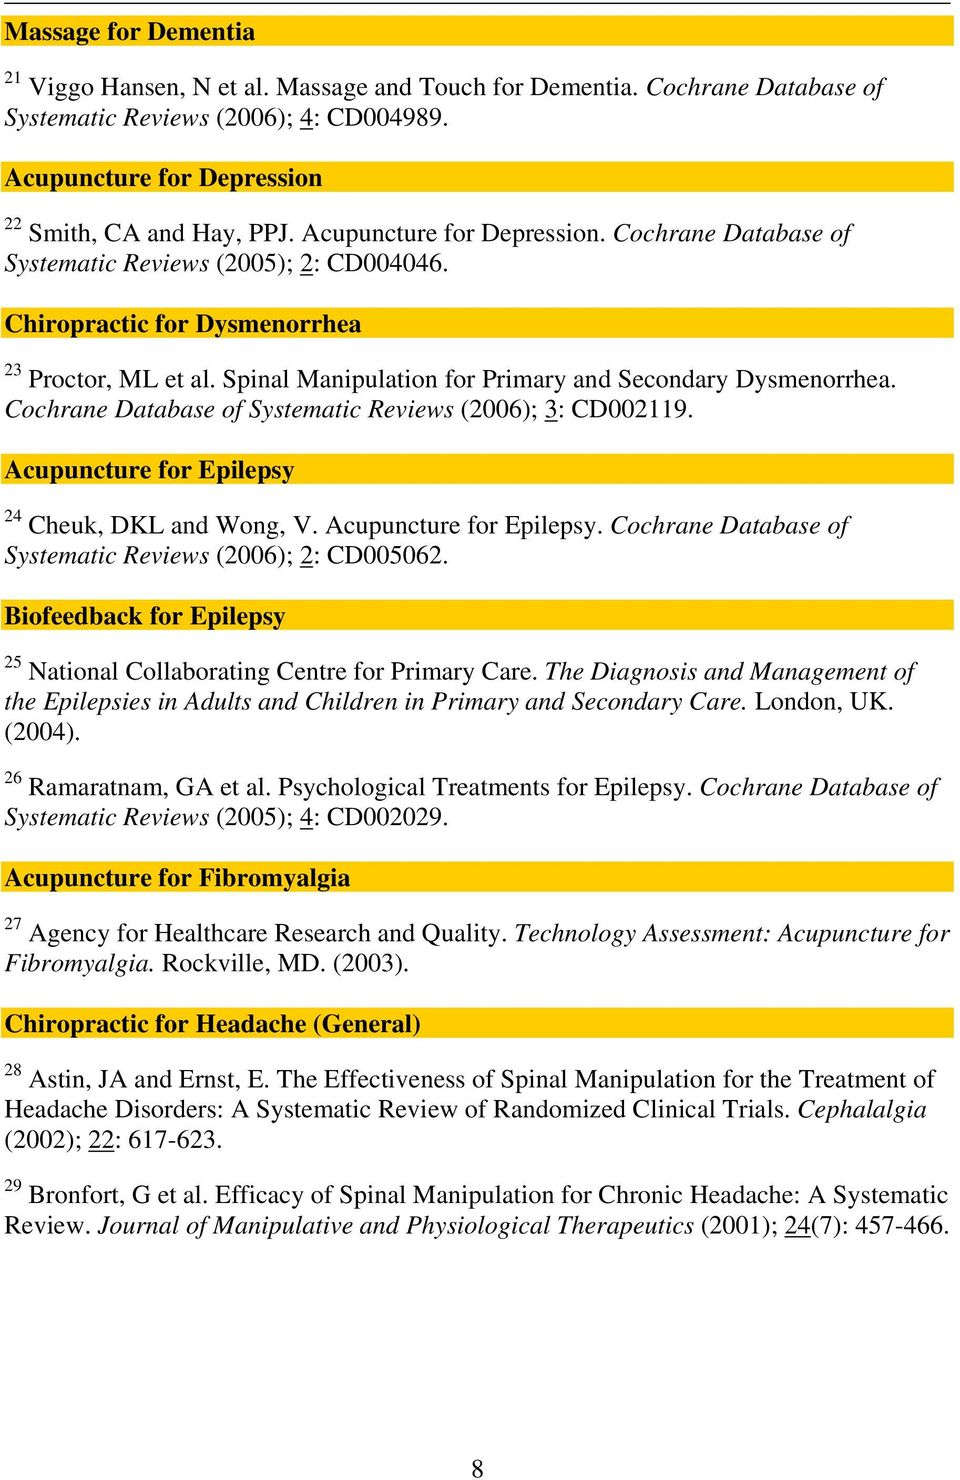 Cochrane Database of Systematic Reviews (2006); 3: CD002119. Acupuncture for Epilepsy 24 Cheuk, DKL and Wong, V. Acupuncture for Epilepsy. Cochrane Database of Systematic Reviews (2006); 2: CD005062.